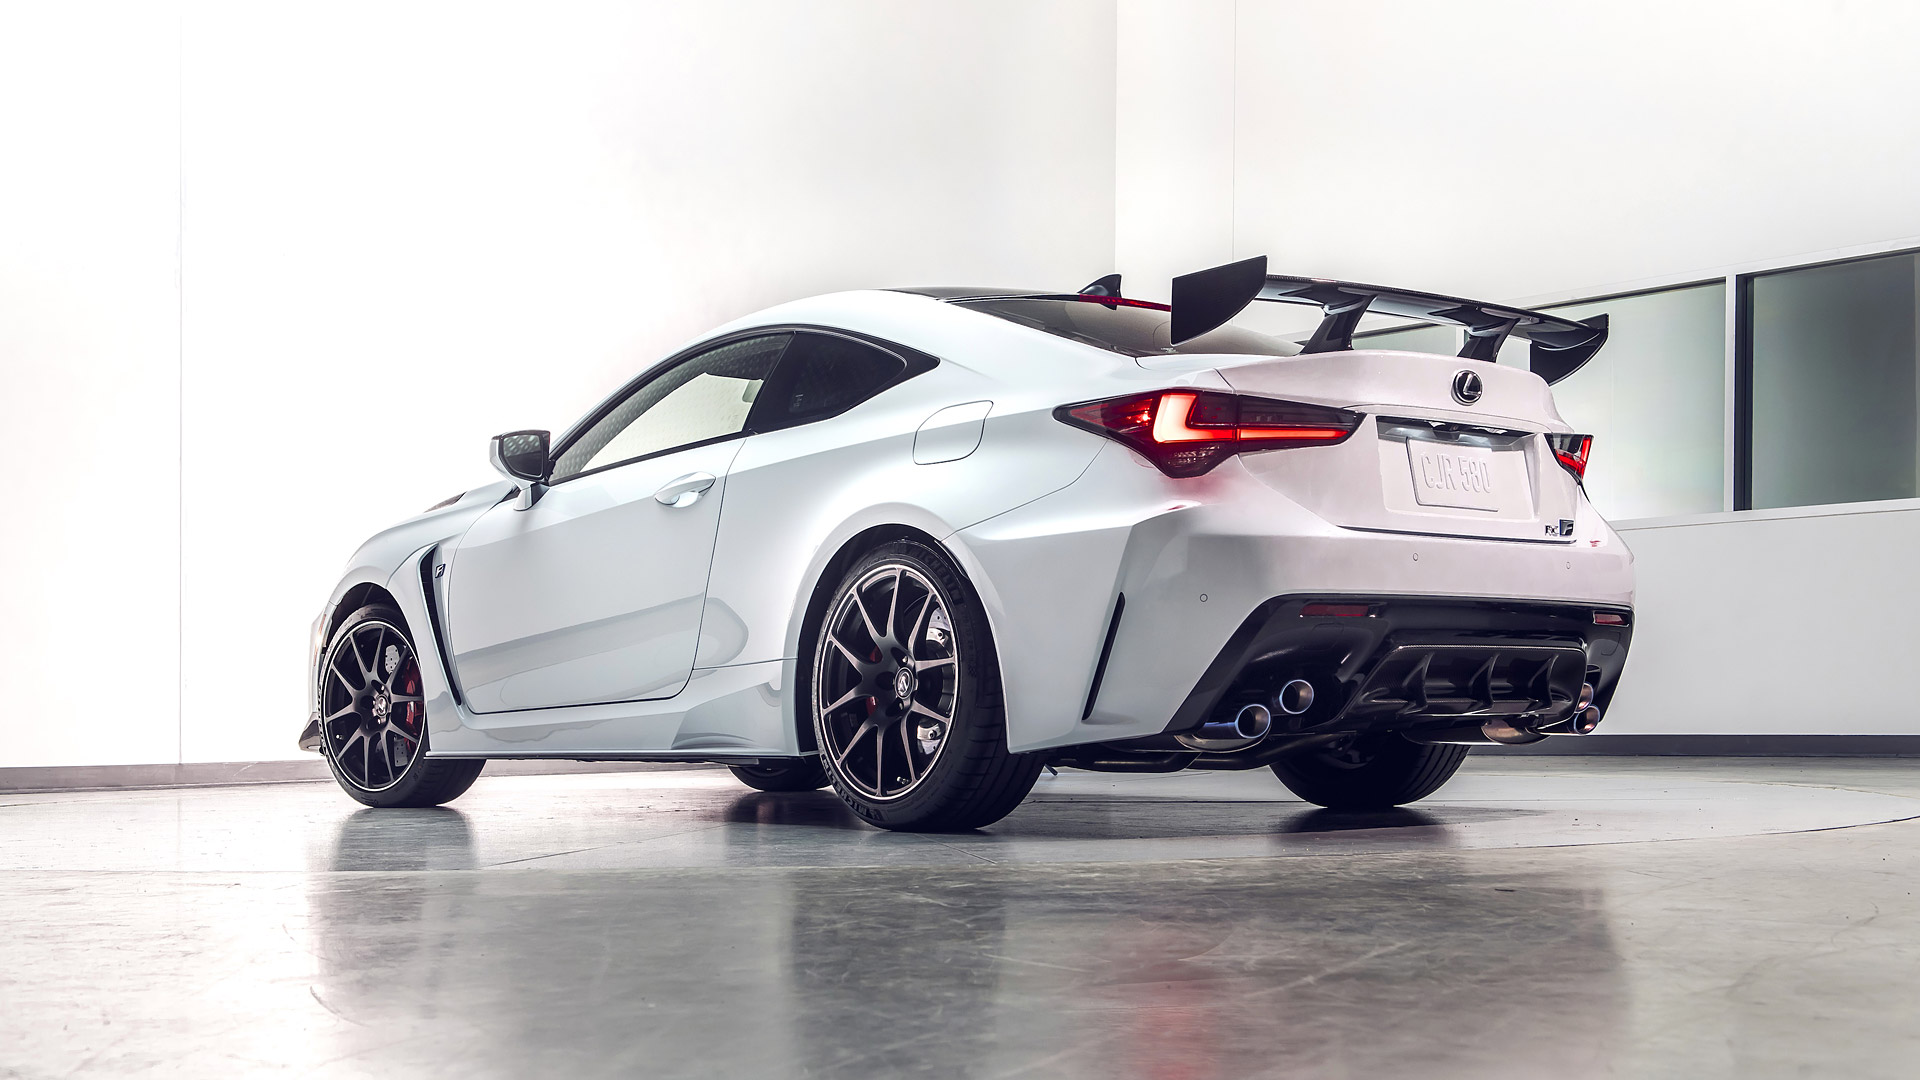 Free Download 2020 Lexus Rc F Track Edition Wallpapers Hd Images Wsupercars 1920x1080 For Your Desktop Mobile Tablet Explore 32 Lexus Rc F Wallpapers Lexus Rc F Wallpaper Lexus